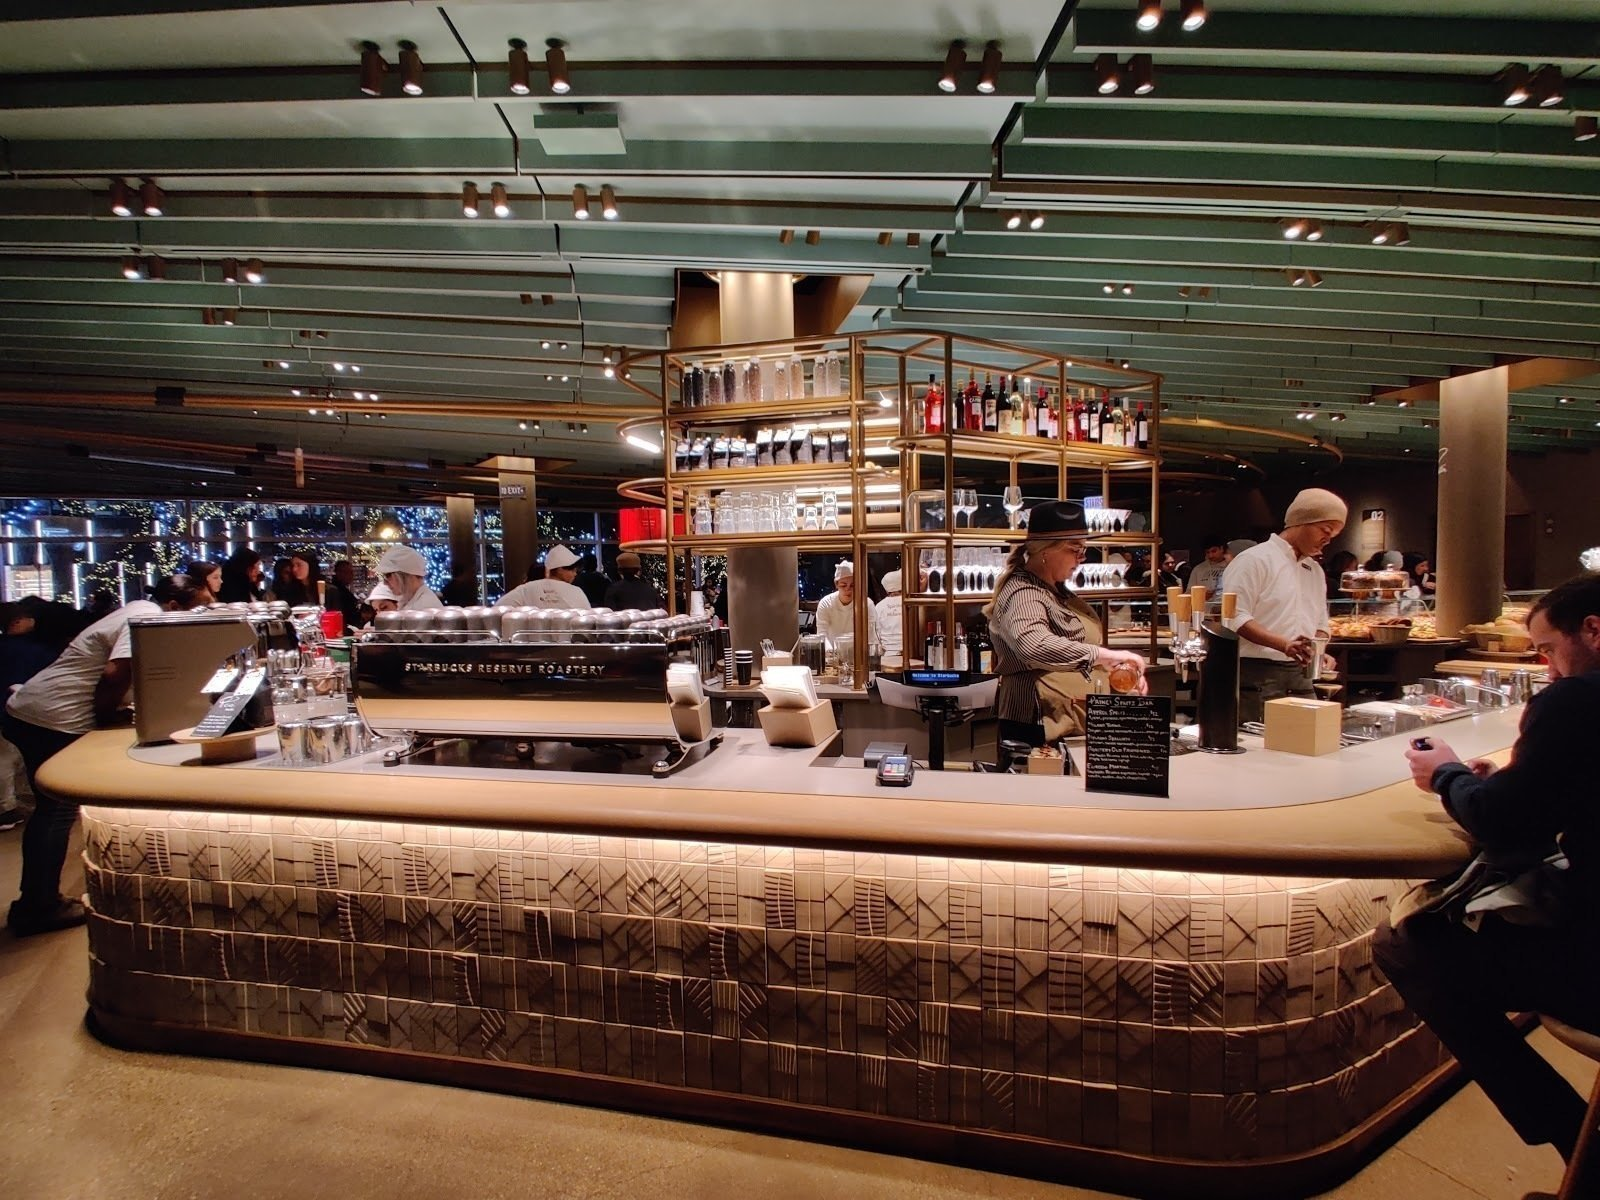 Starbucks Reserve Roastery: A Work-Friendly Place in Chicago